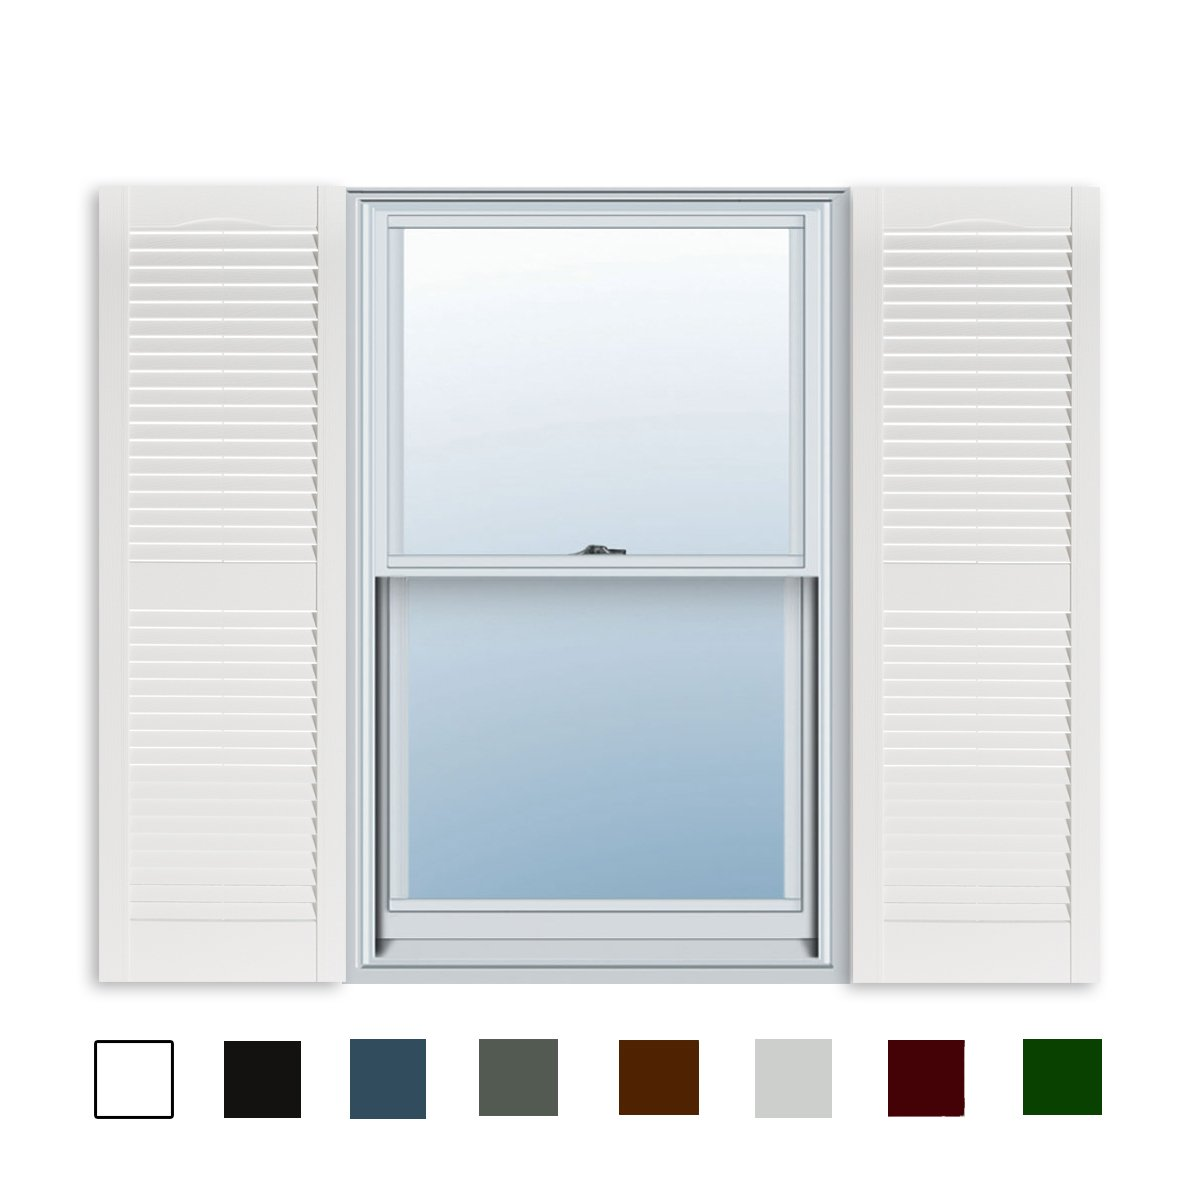 15 Inch x 55 Inch Standard Louver Exterior Vinyl Window Shutters, White (Pair) by ExteriorSolutions.com